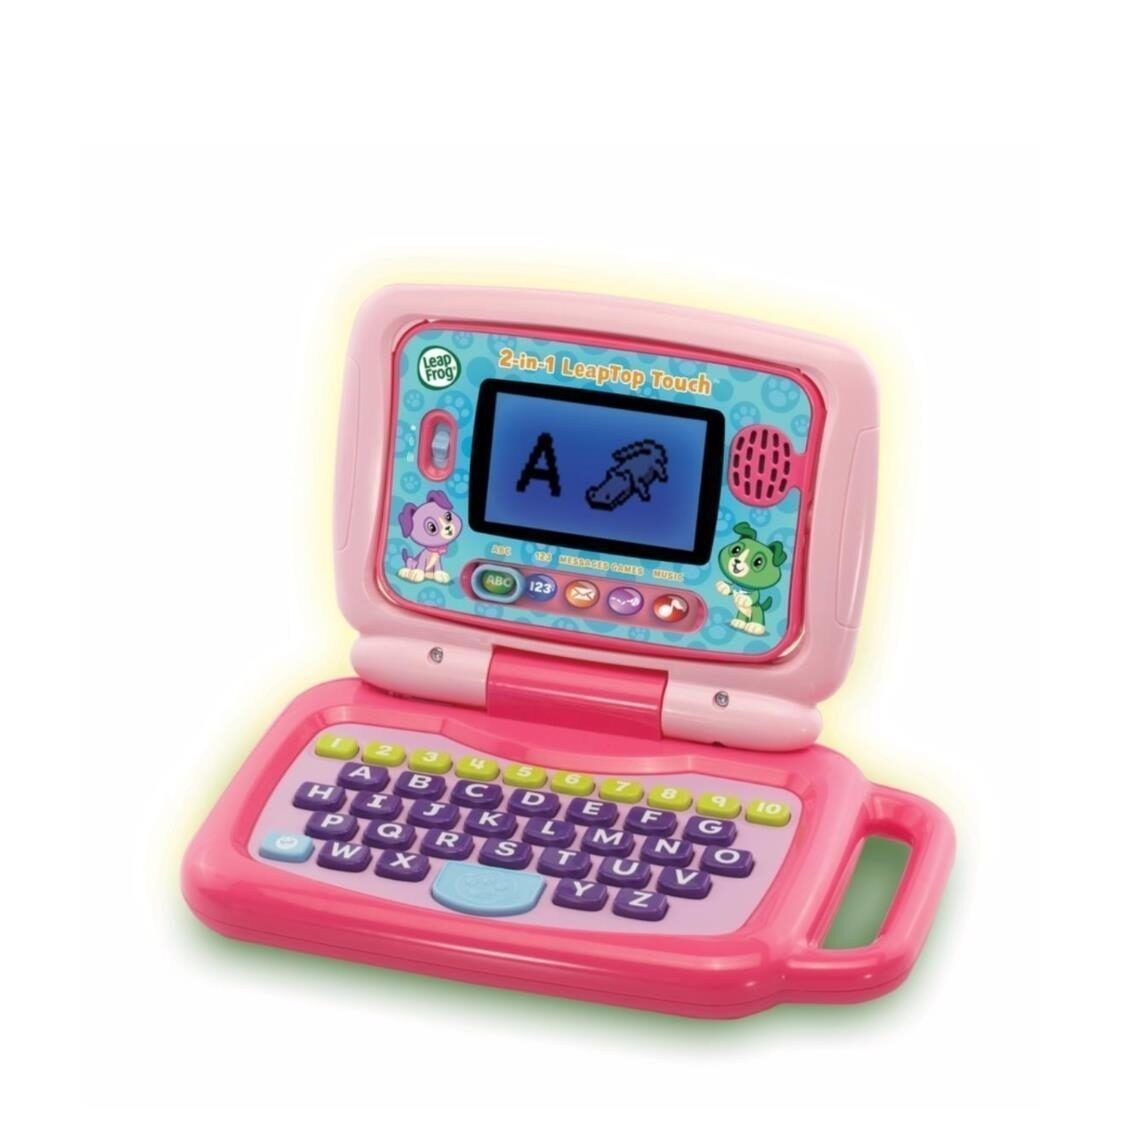 2 In 1 Leaptop Touch Pink